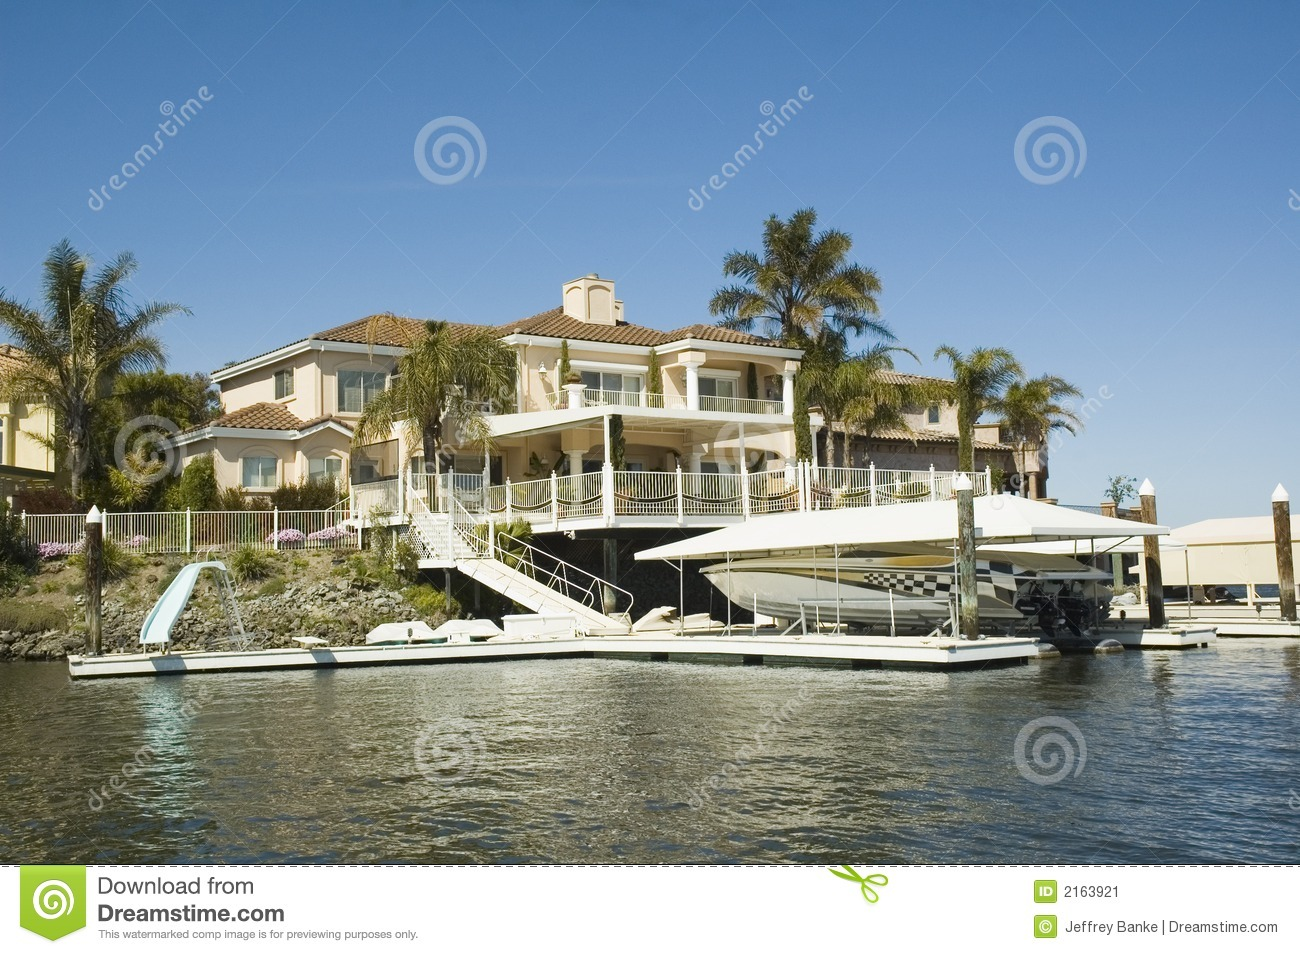 House with waterfront access